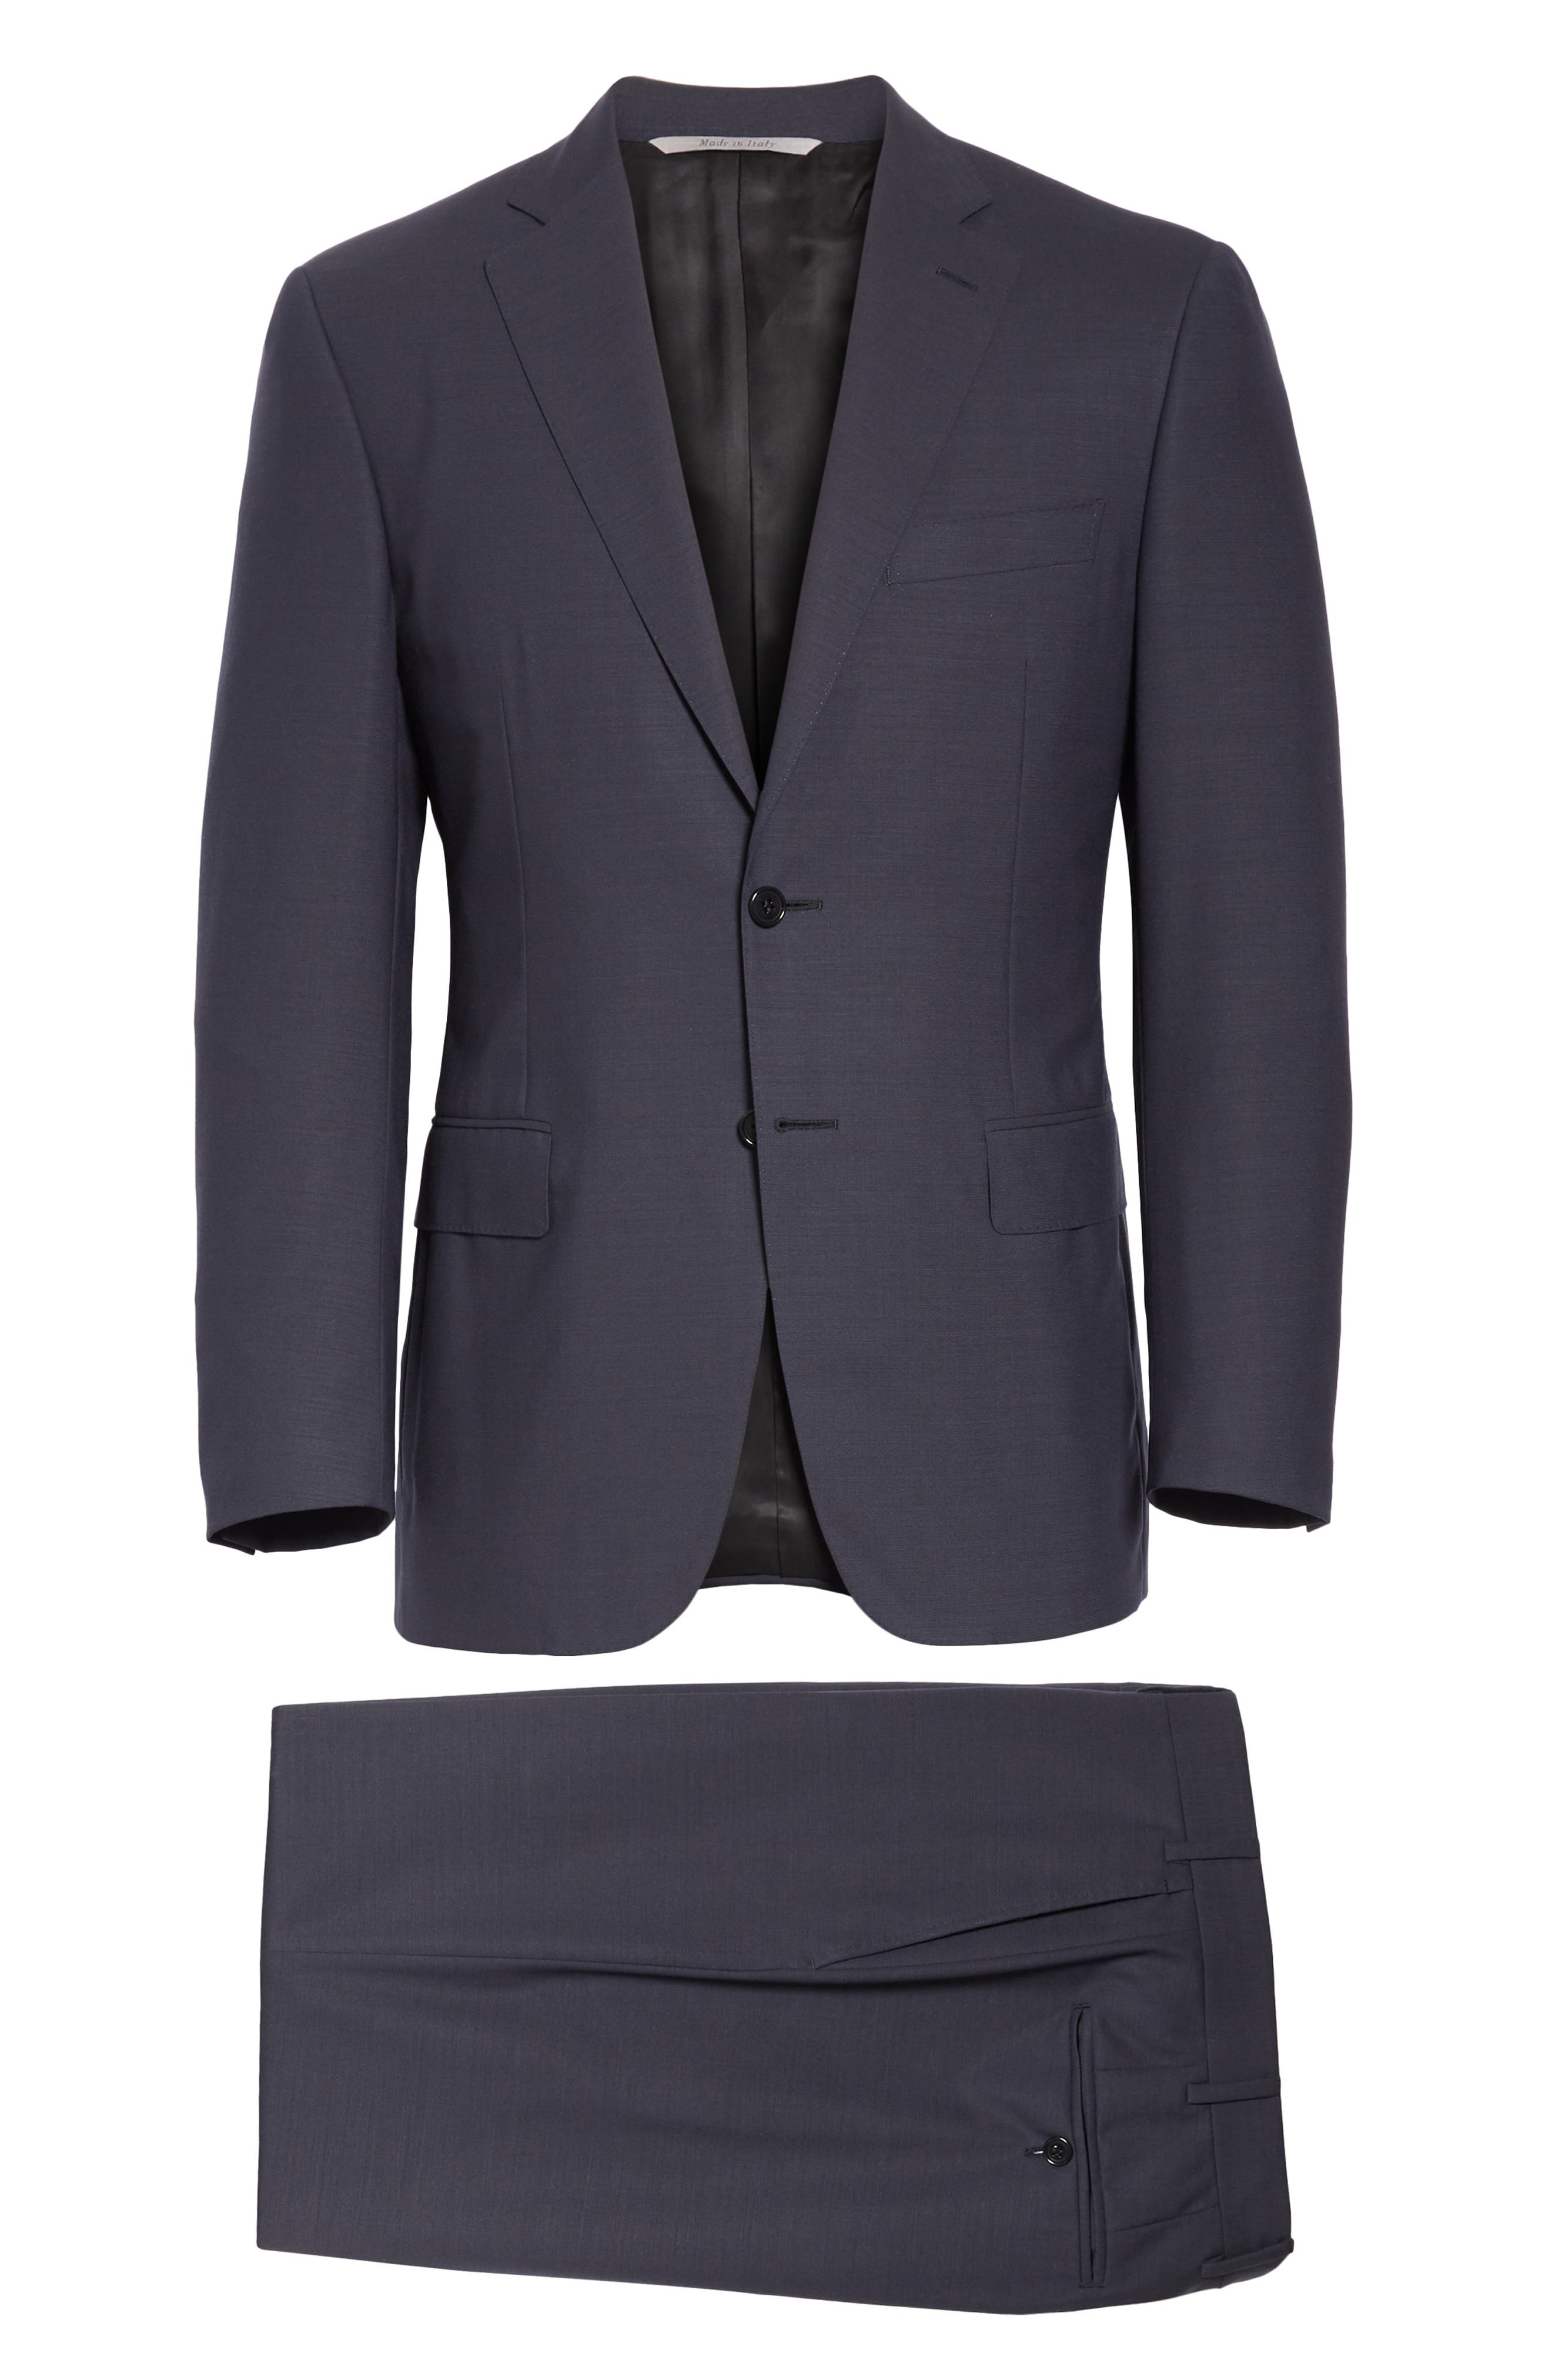 Classic Fit Solid Wool Suit,                             Alternate thumbnail 8, color,                             CHARCOAL